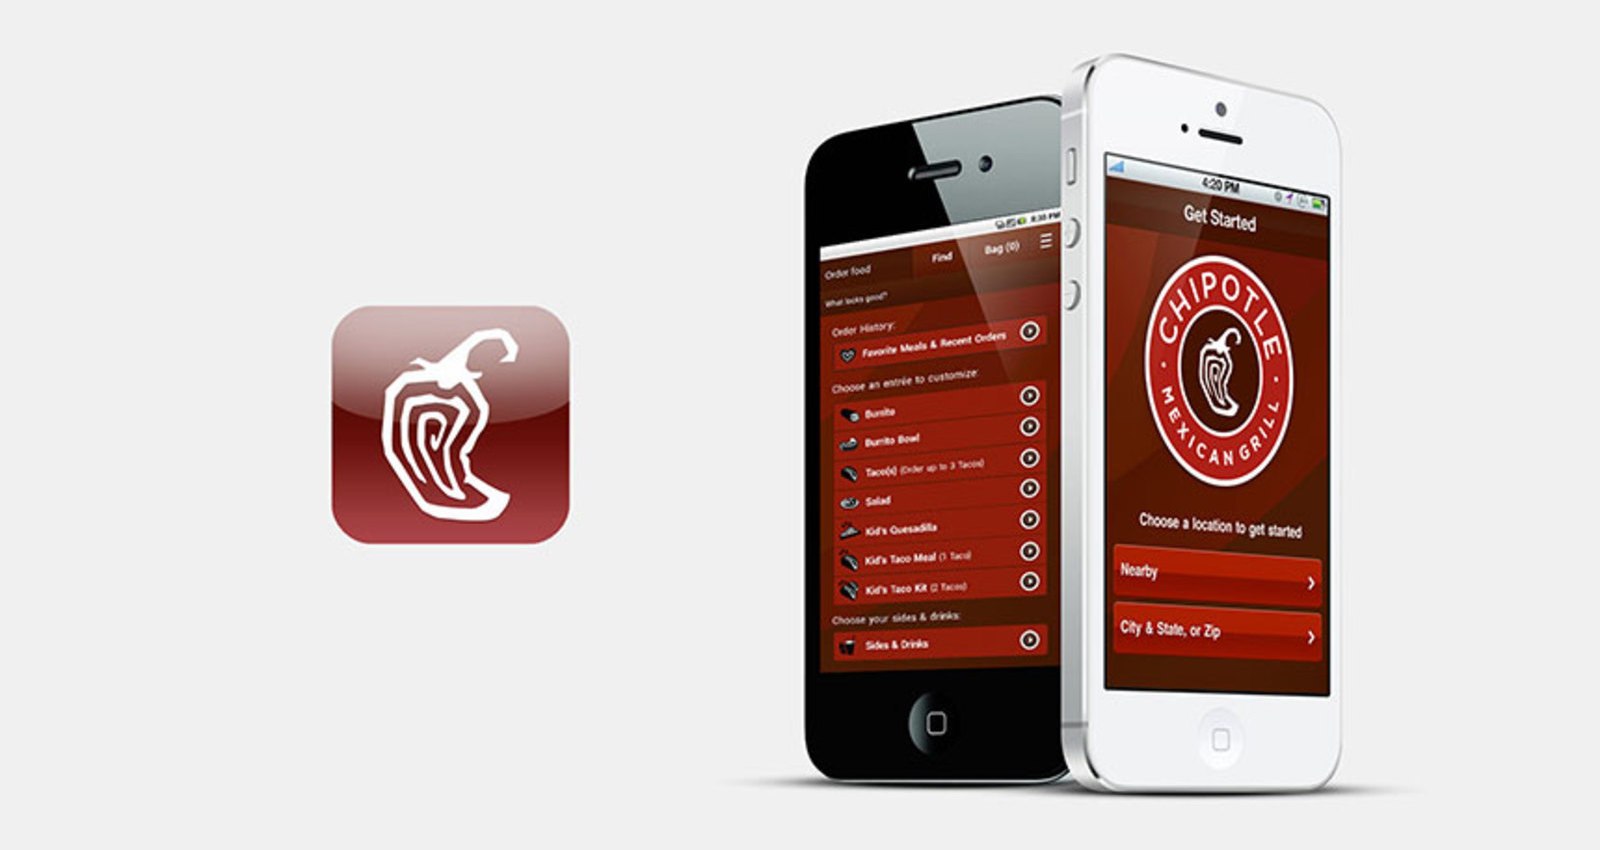 Chipotle Ordering App